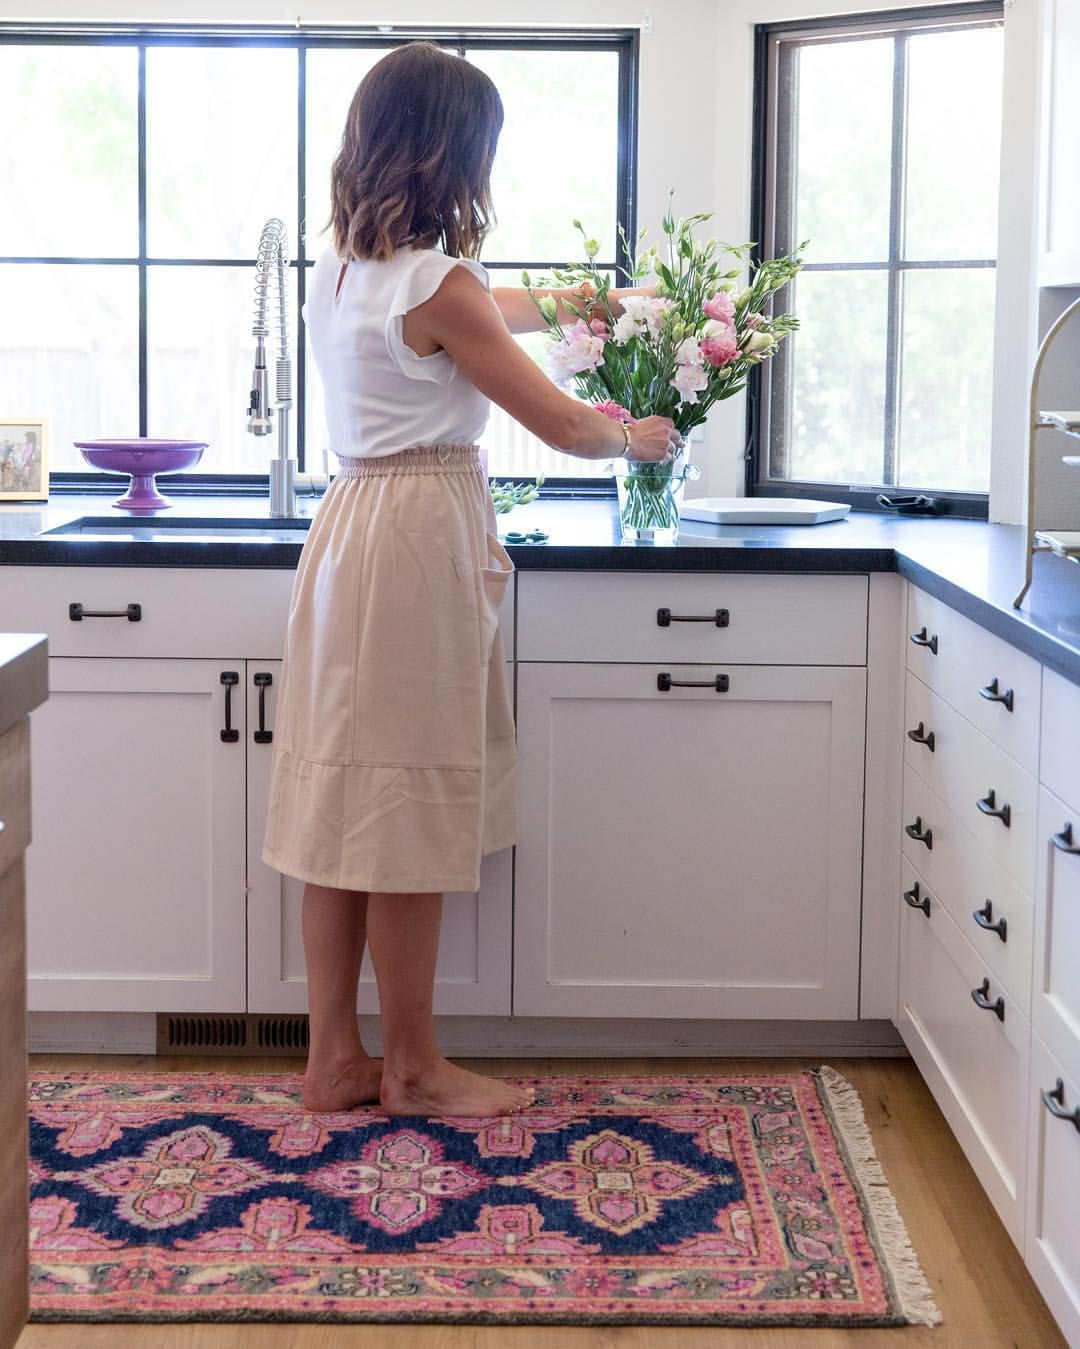 25 Stunning Picture For Choosing The Perfect Kitchen Rugs Vintage